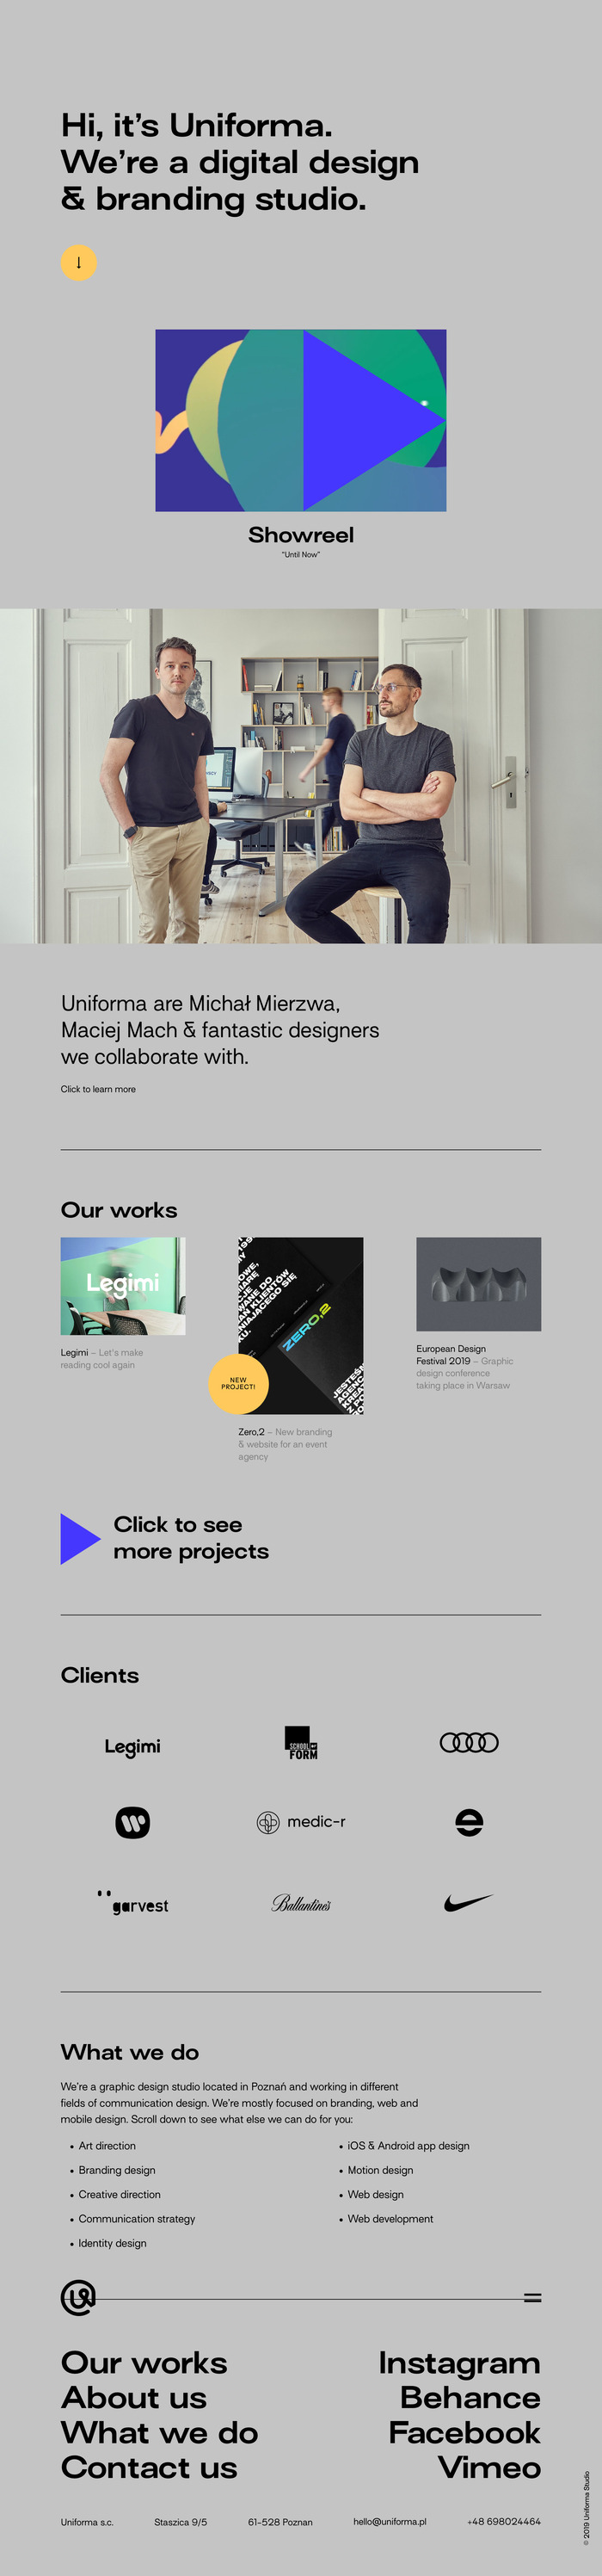 Uniforma portfolio website 4